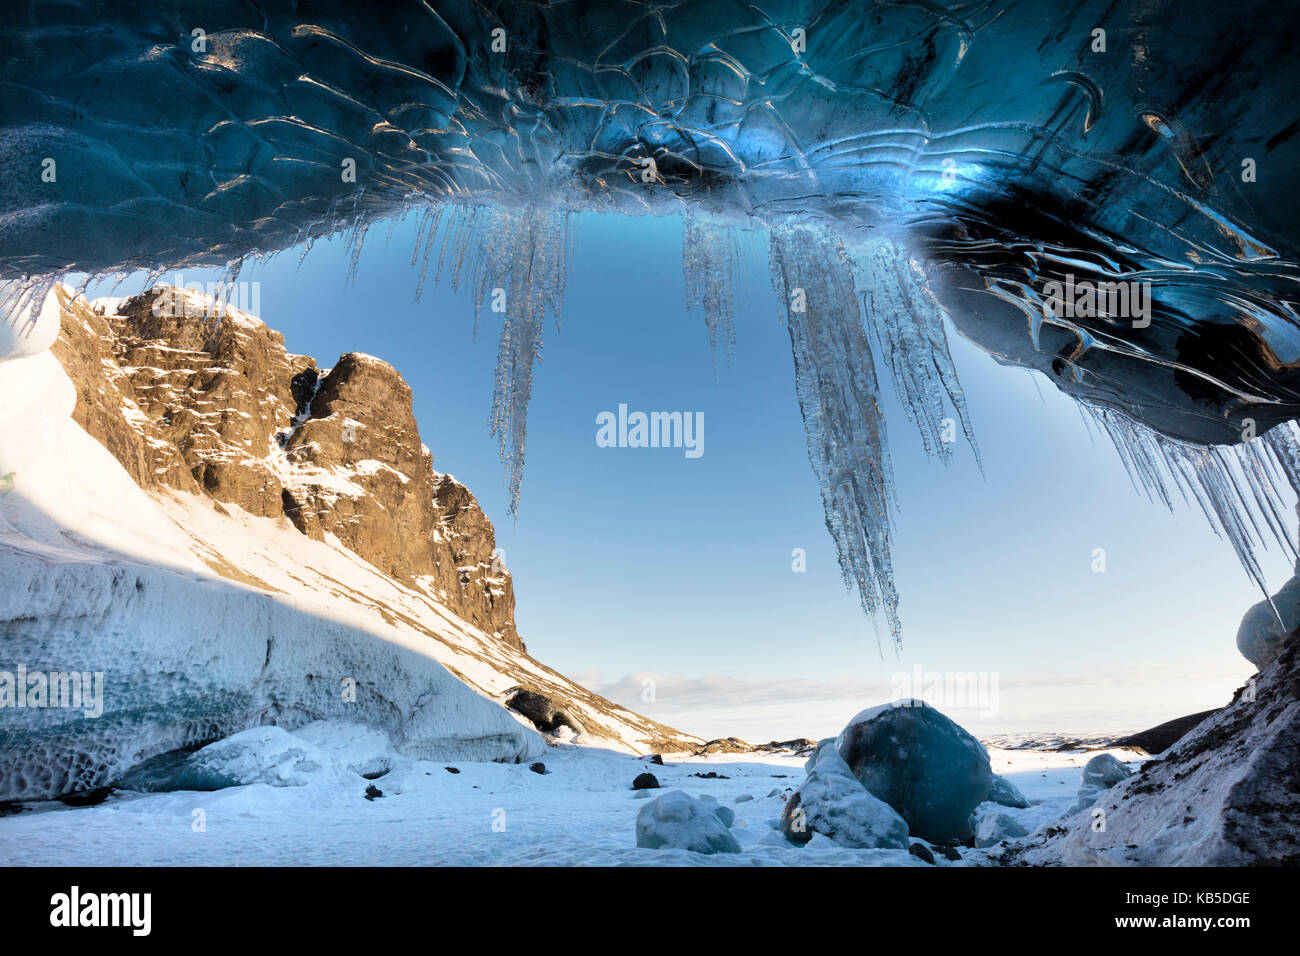 View from ice cave towards sunlit mountains with icicles hanging from cave entrance, near Jokulsarlon, South Icelan - Stock Image